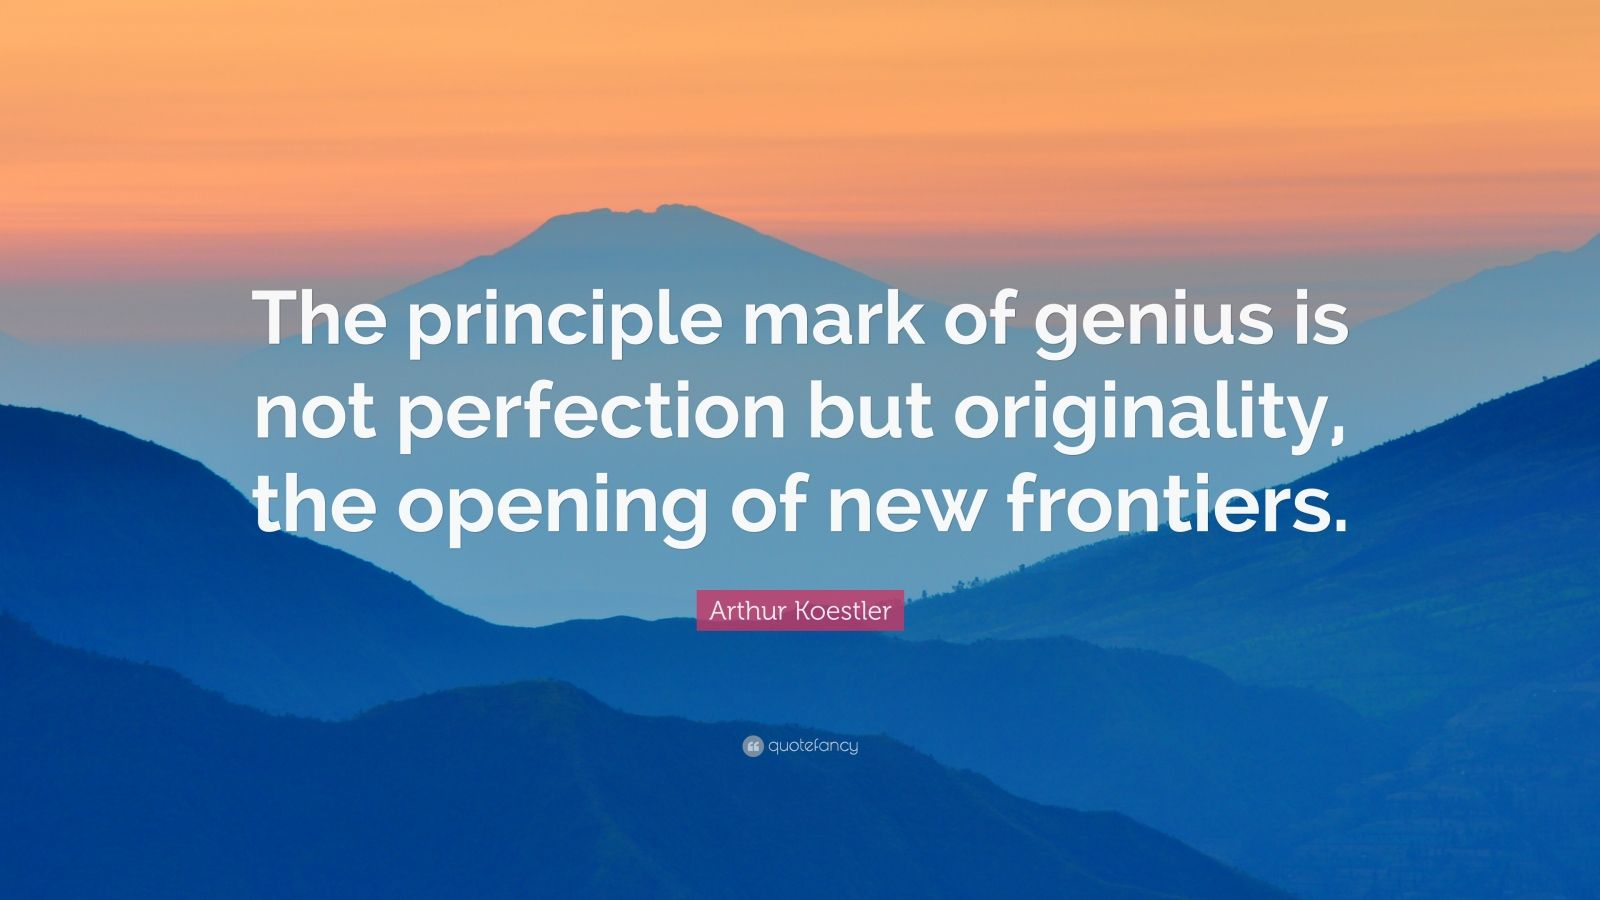 """Arthur Koestler Quote: """"The principle mark of genius is not perfection but originality, the opening of new frontiers."""""""